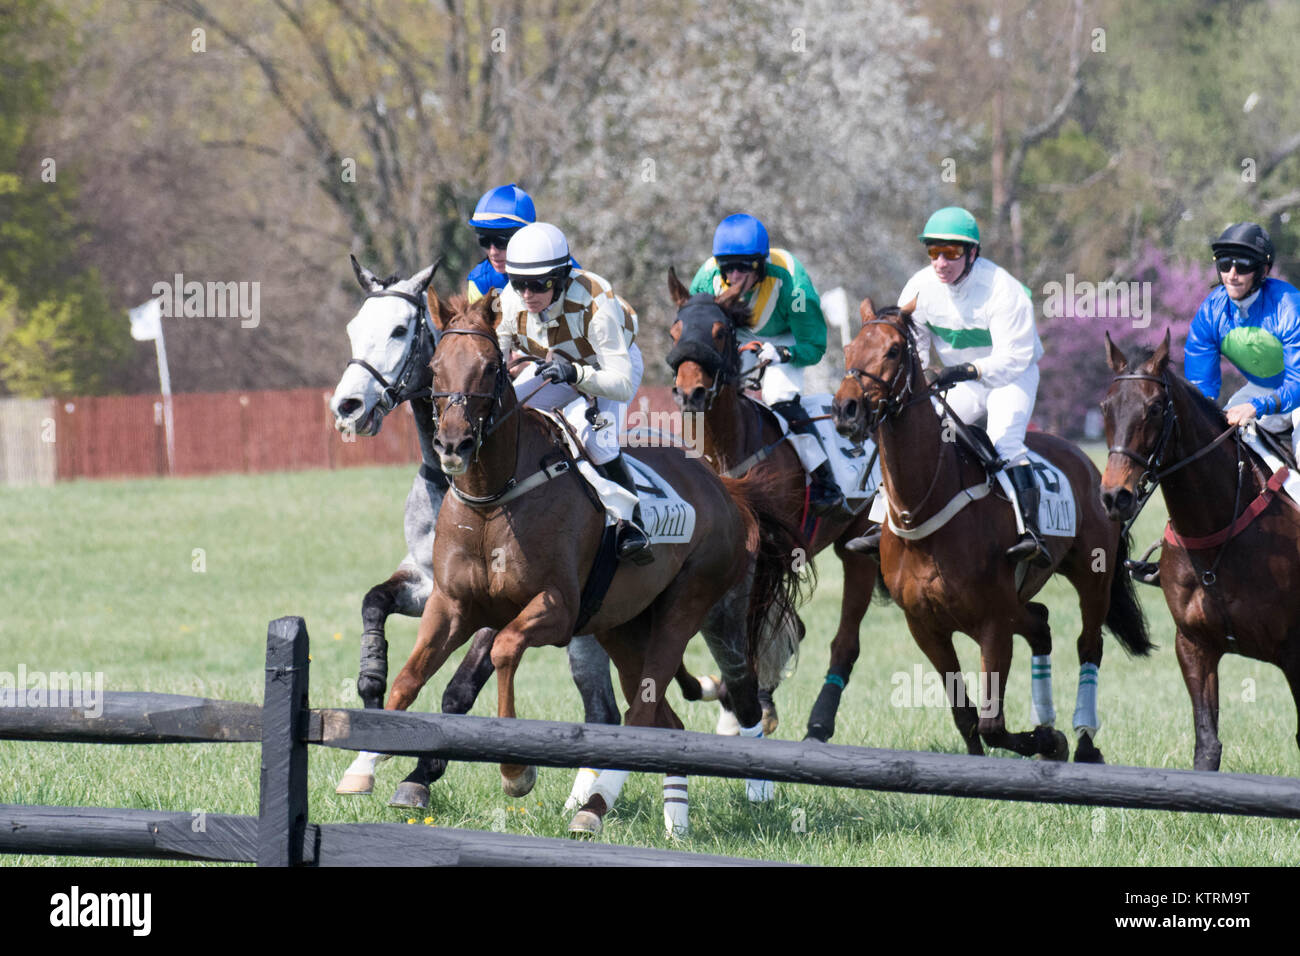 Jockeys contend for prime position approaching a hurdle. Stock Photo